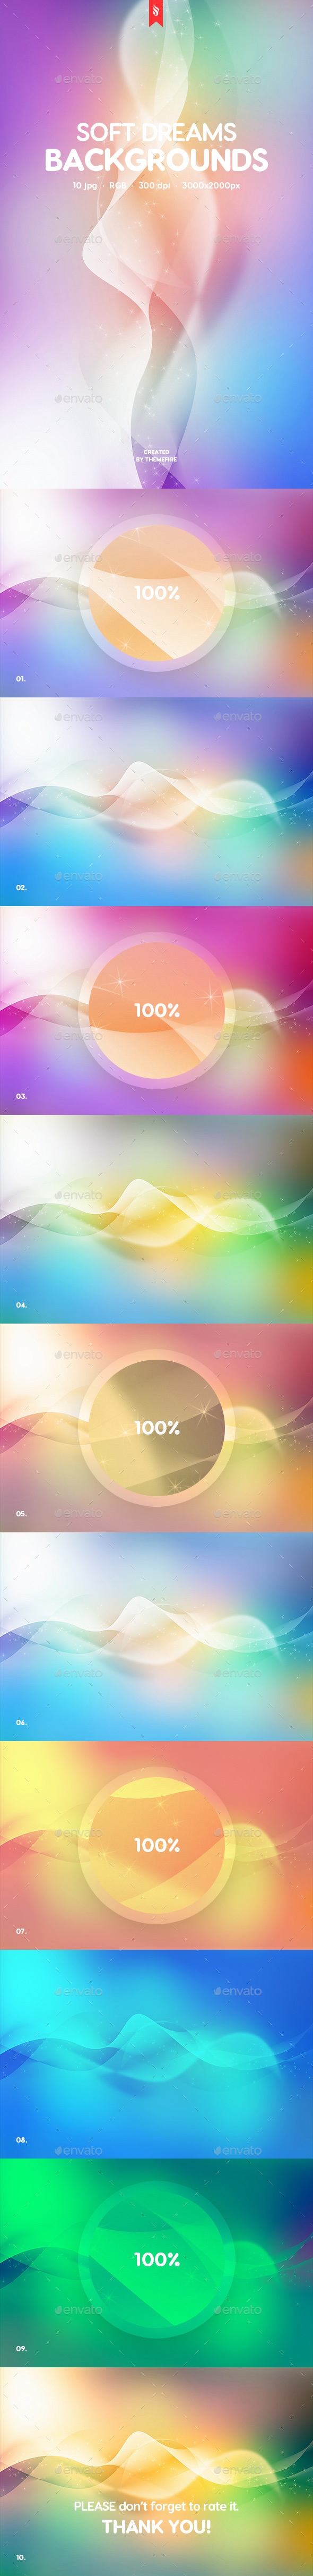 GraphicRiver Soft Dreams Backgrounds 20719869